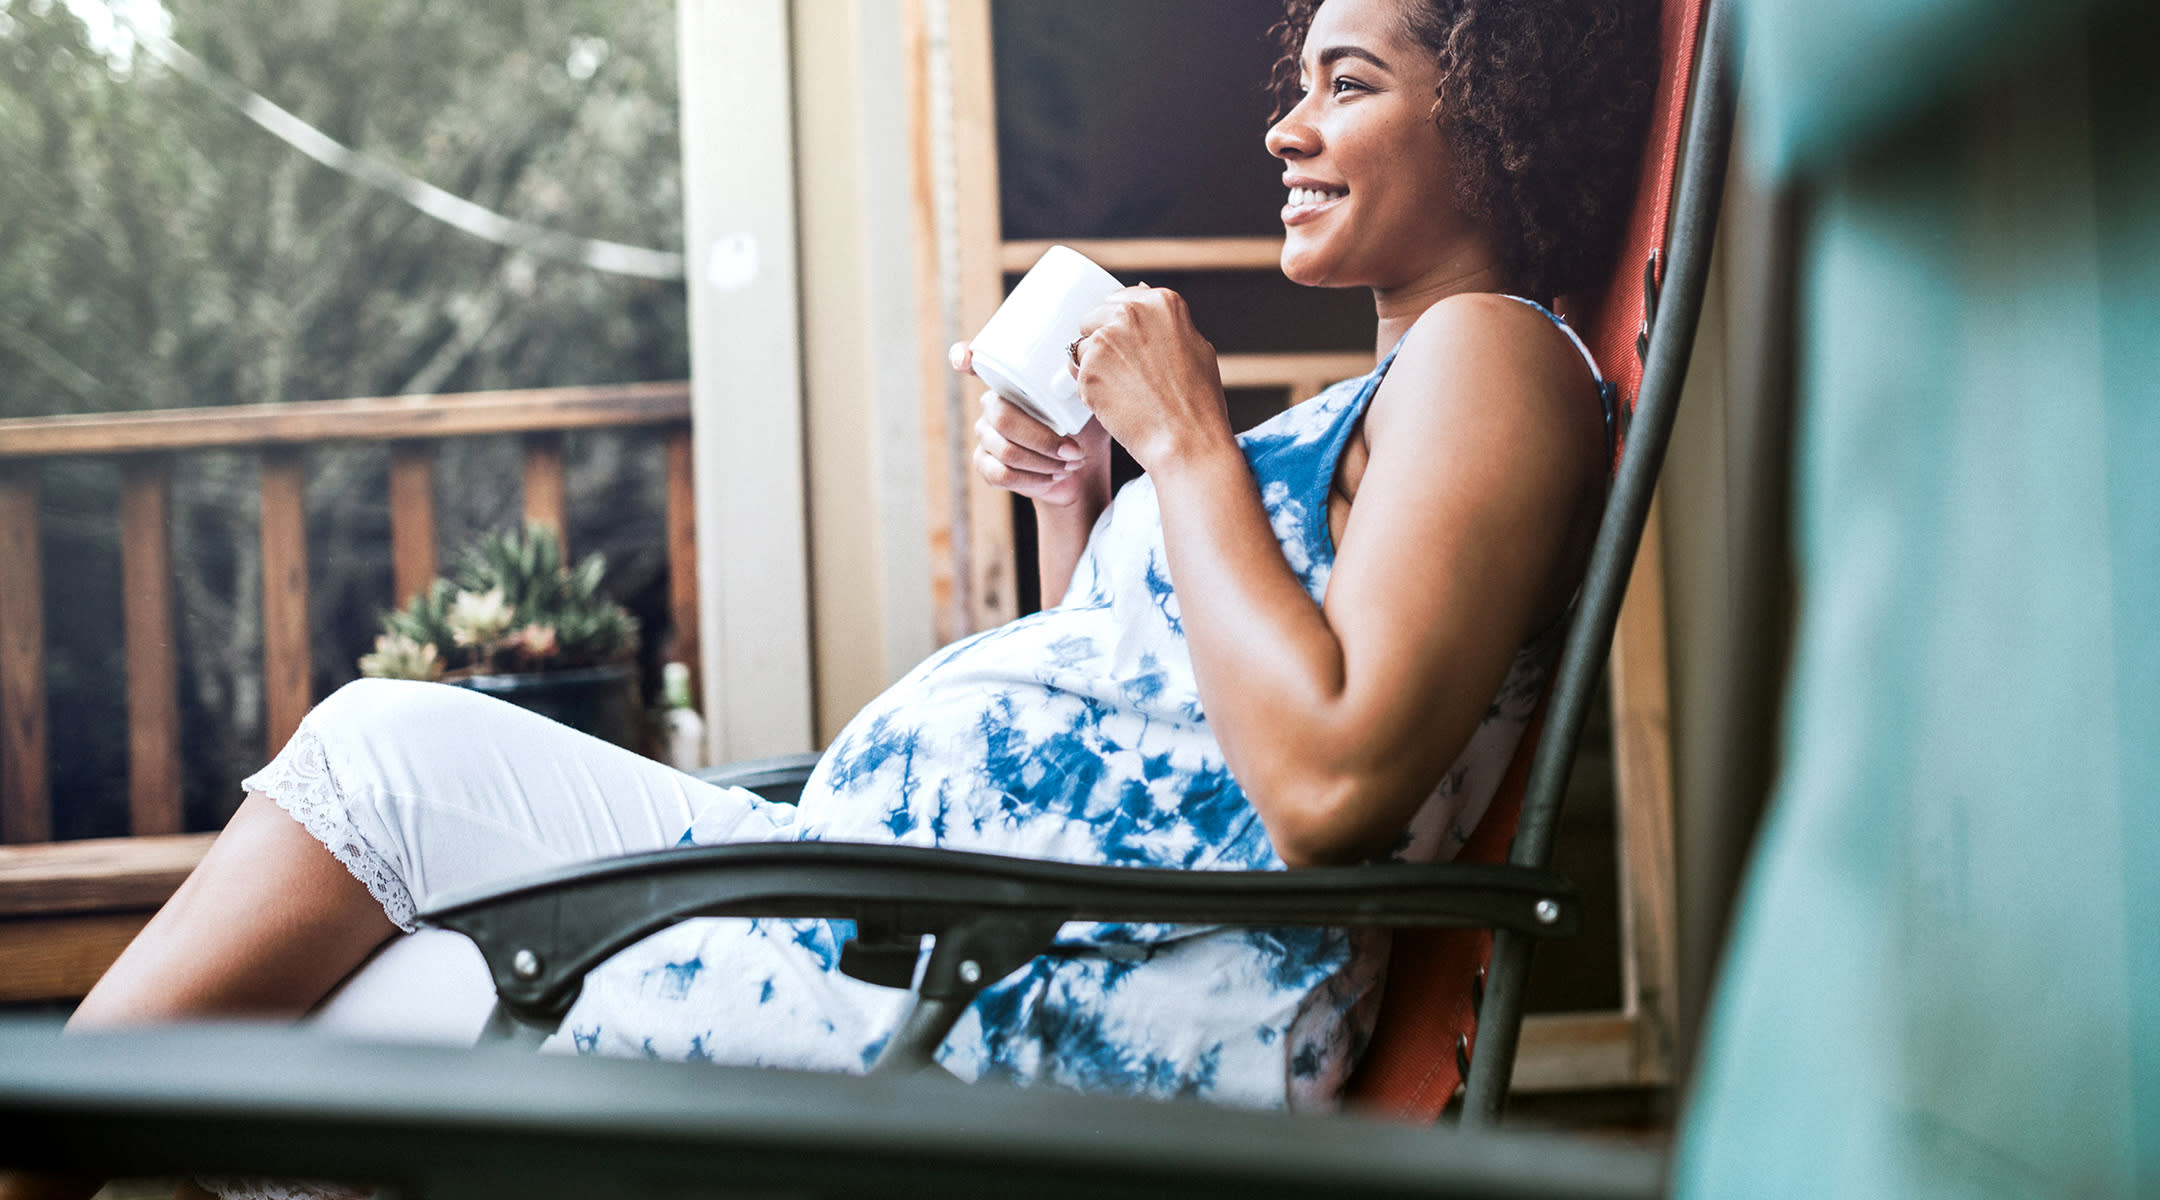 pregnant woman drinking coffee at home laughing